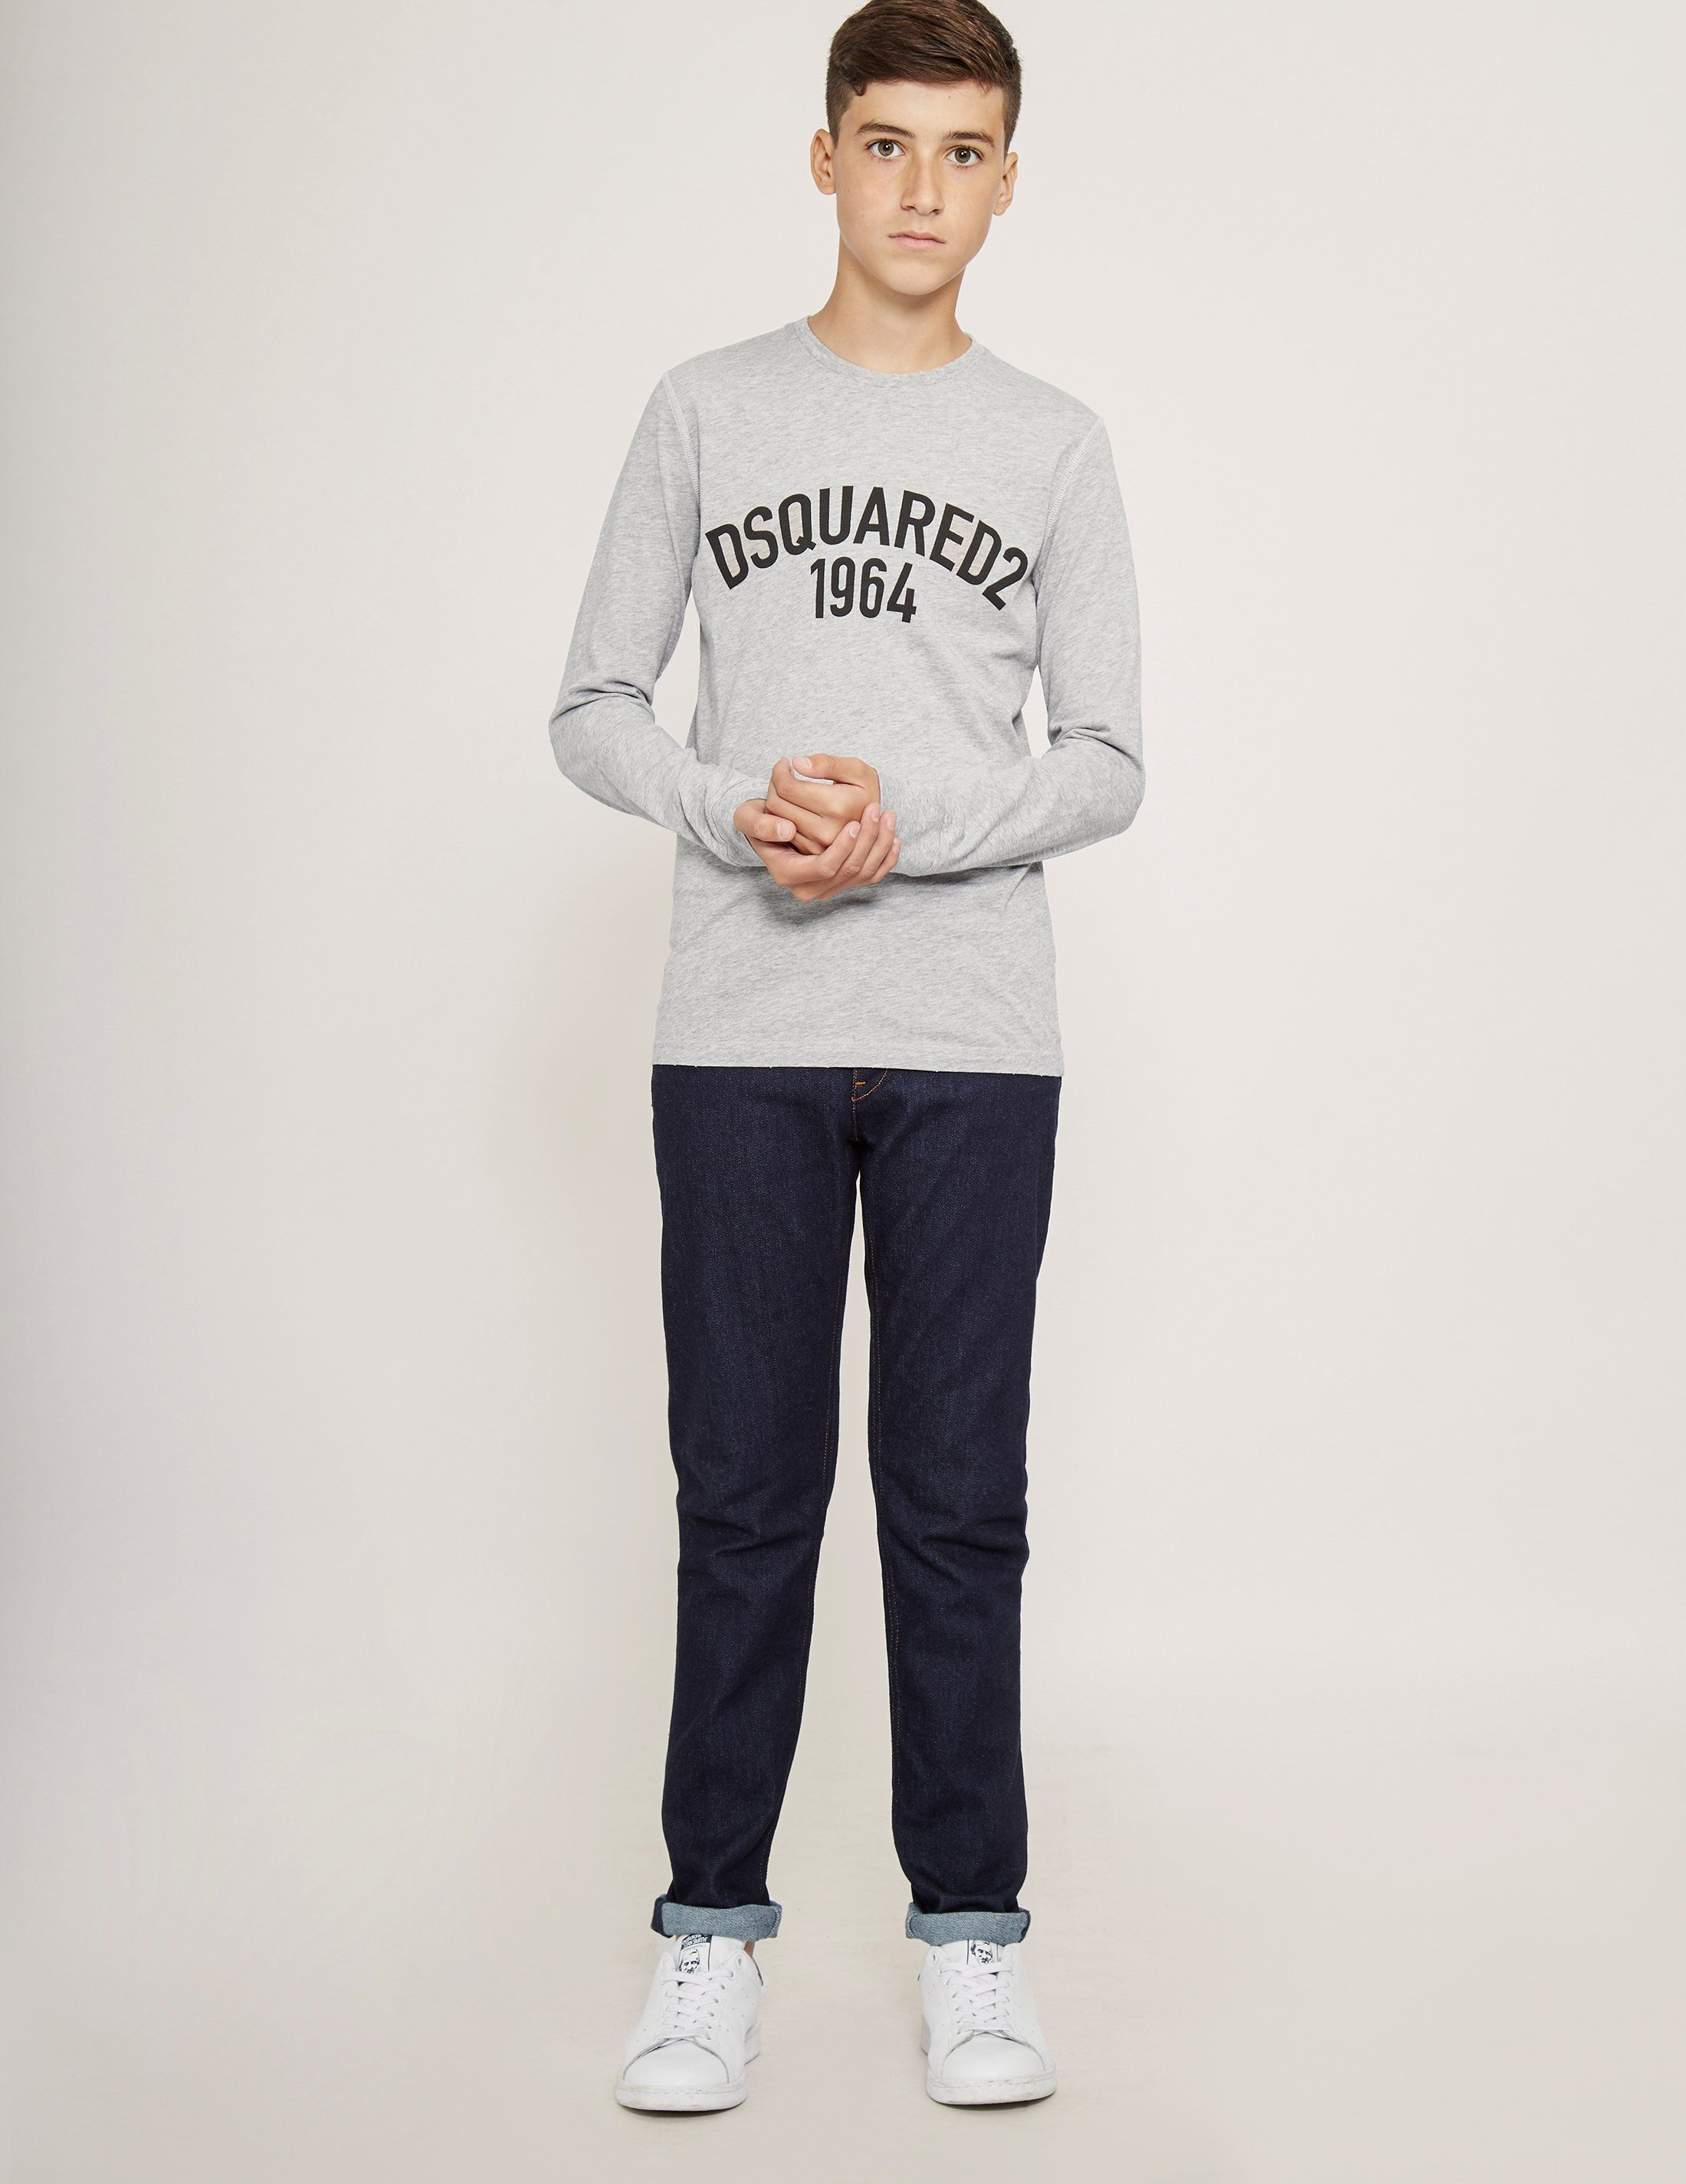 DSQUARED2 1964 Long Sleeve T-Shirt